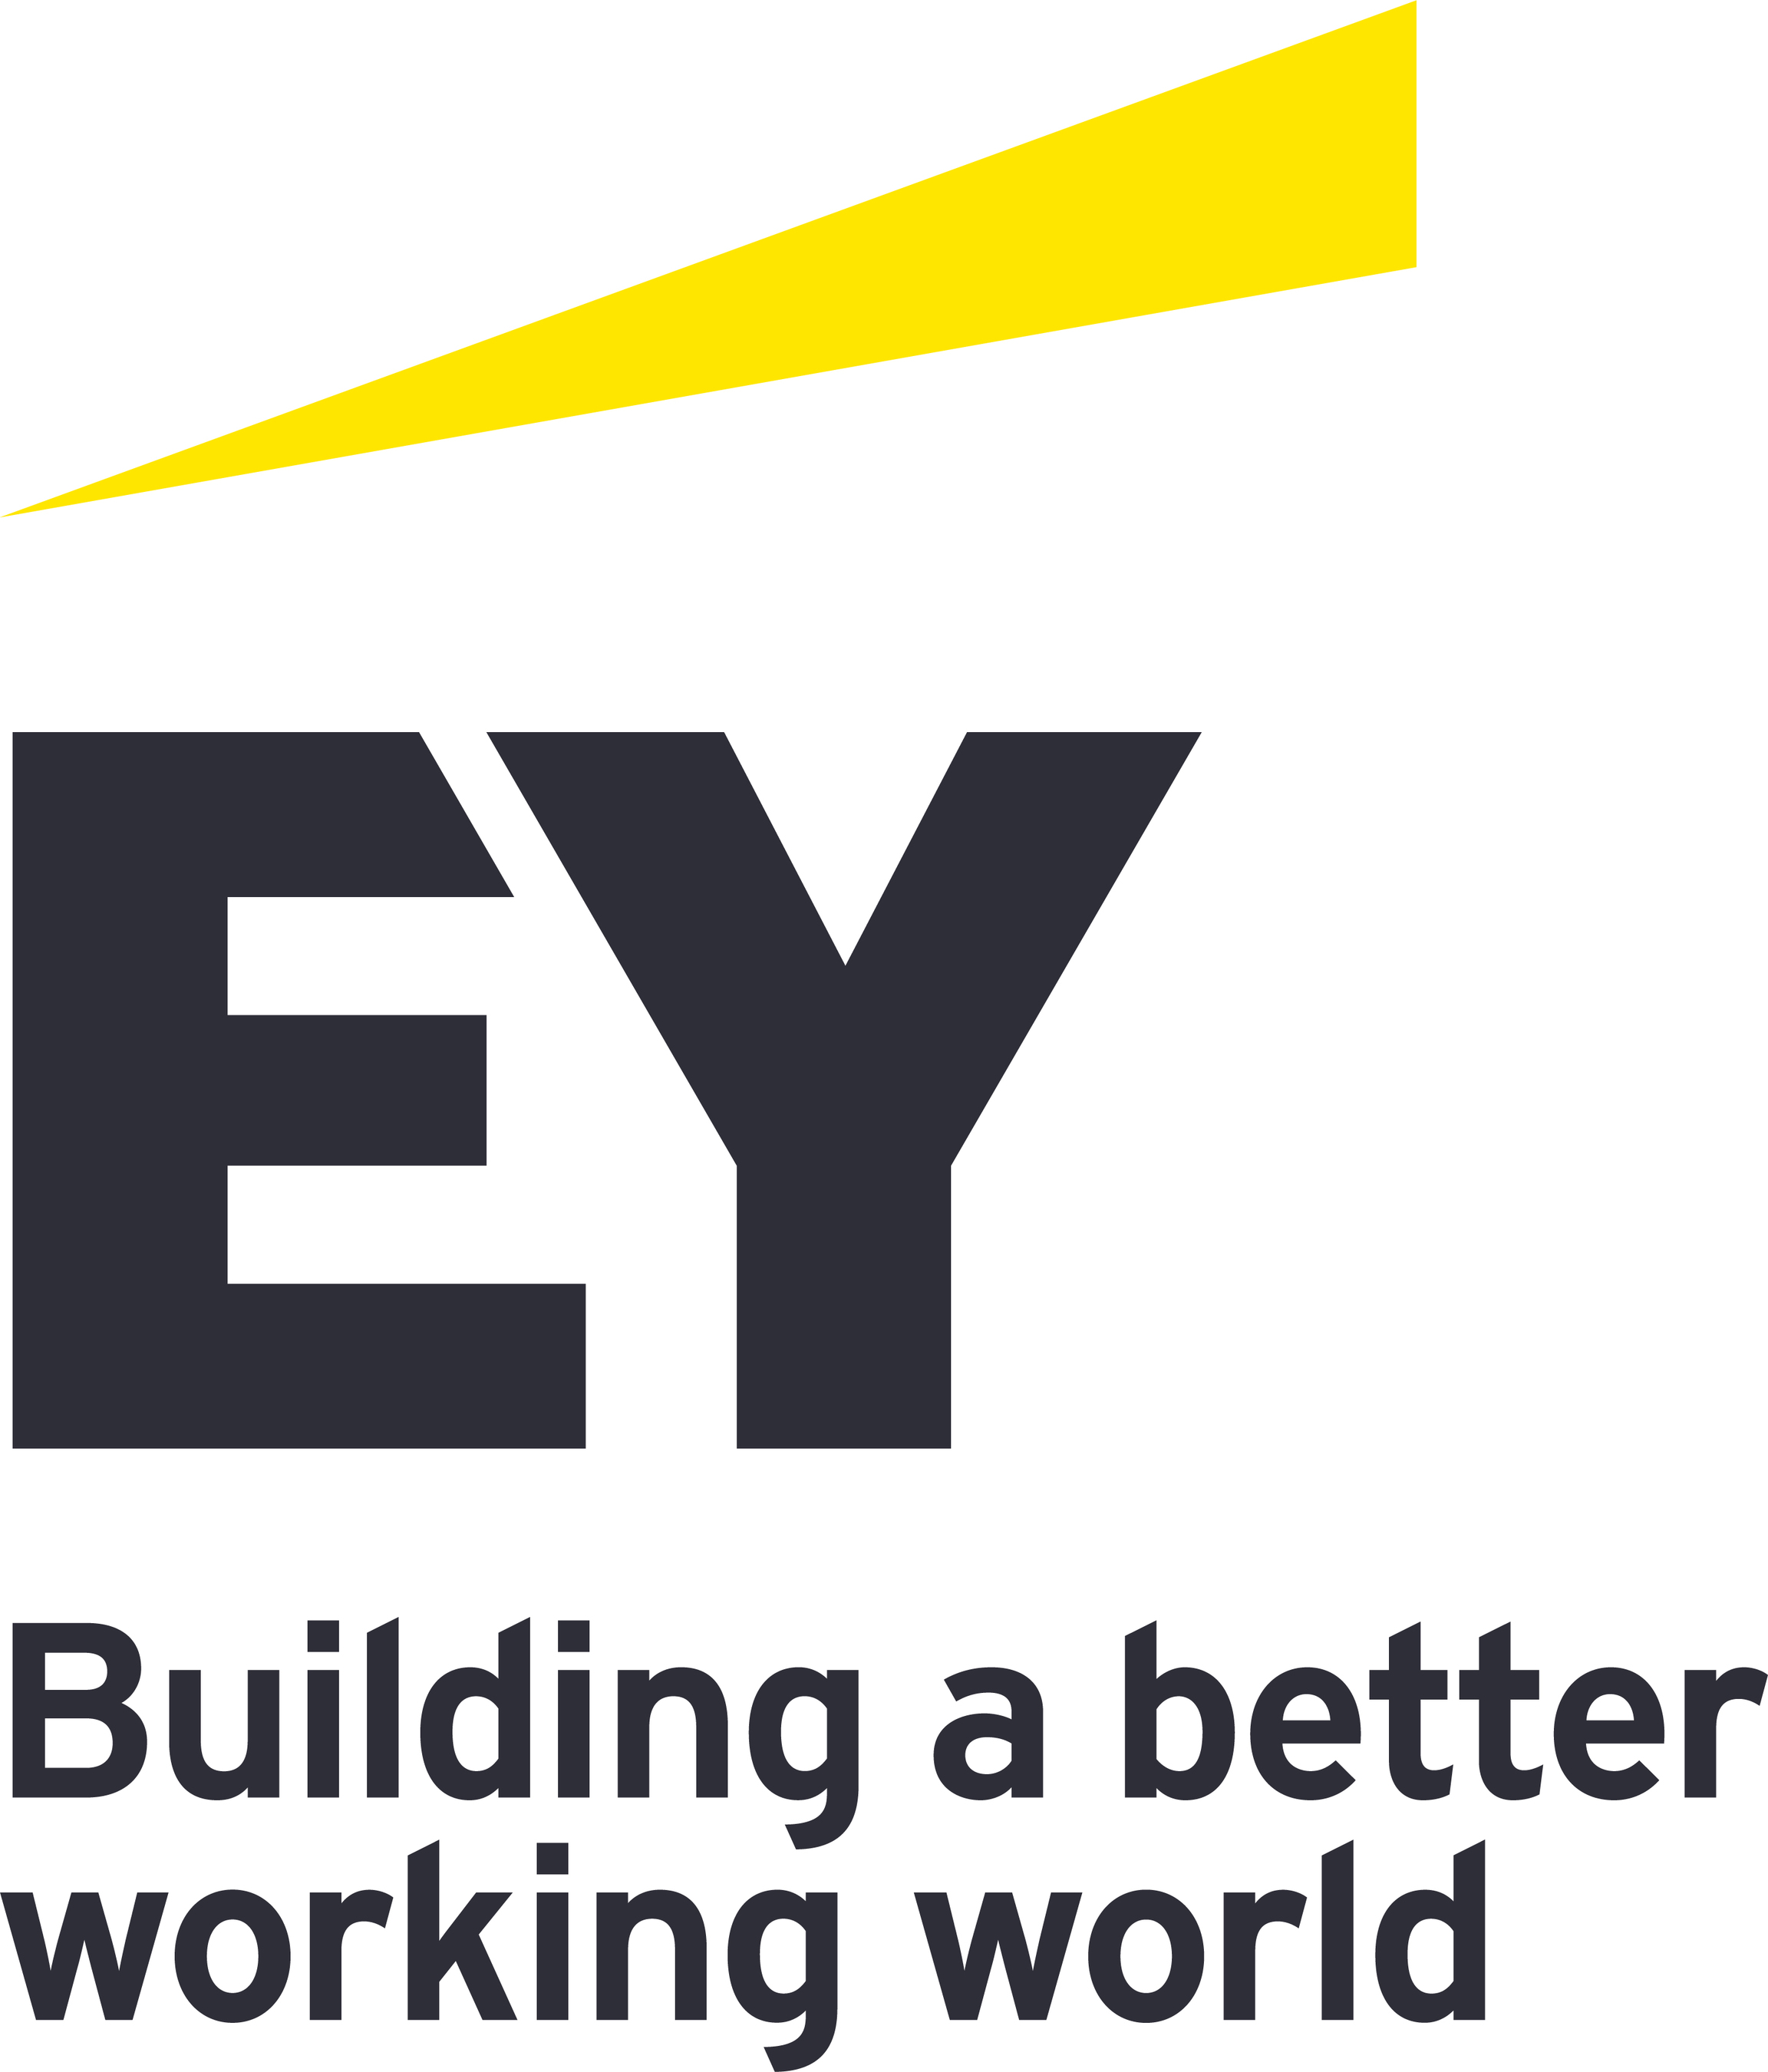 EY signs power purchase agreements to initiate the construction of two wind farms to offset carbon emissions